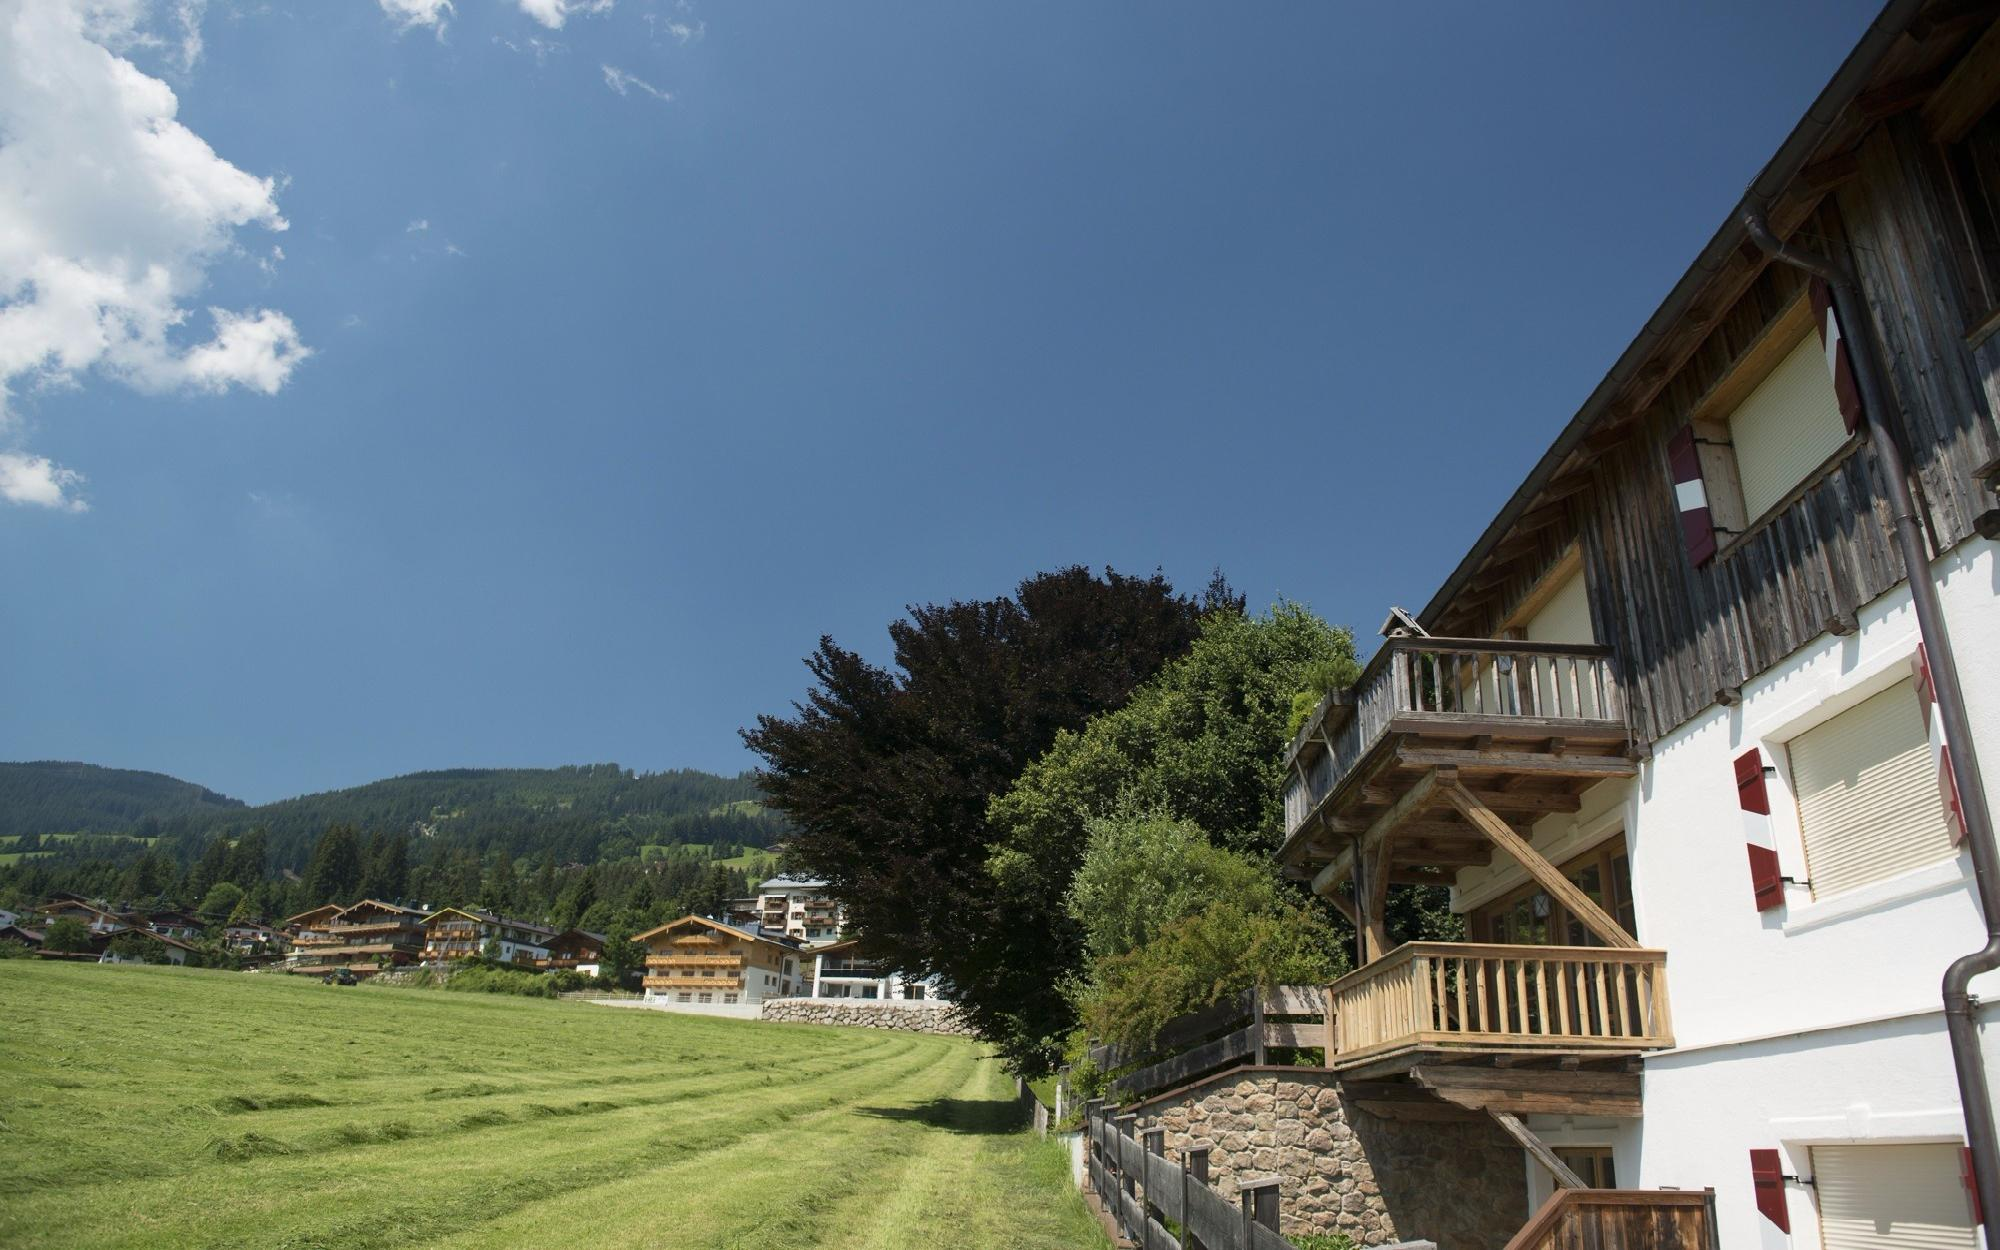 Chic apartment in a sunny outermost region in Tyrol